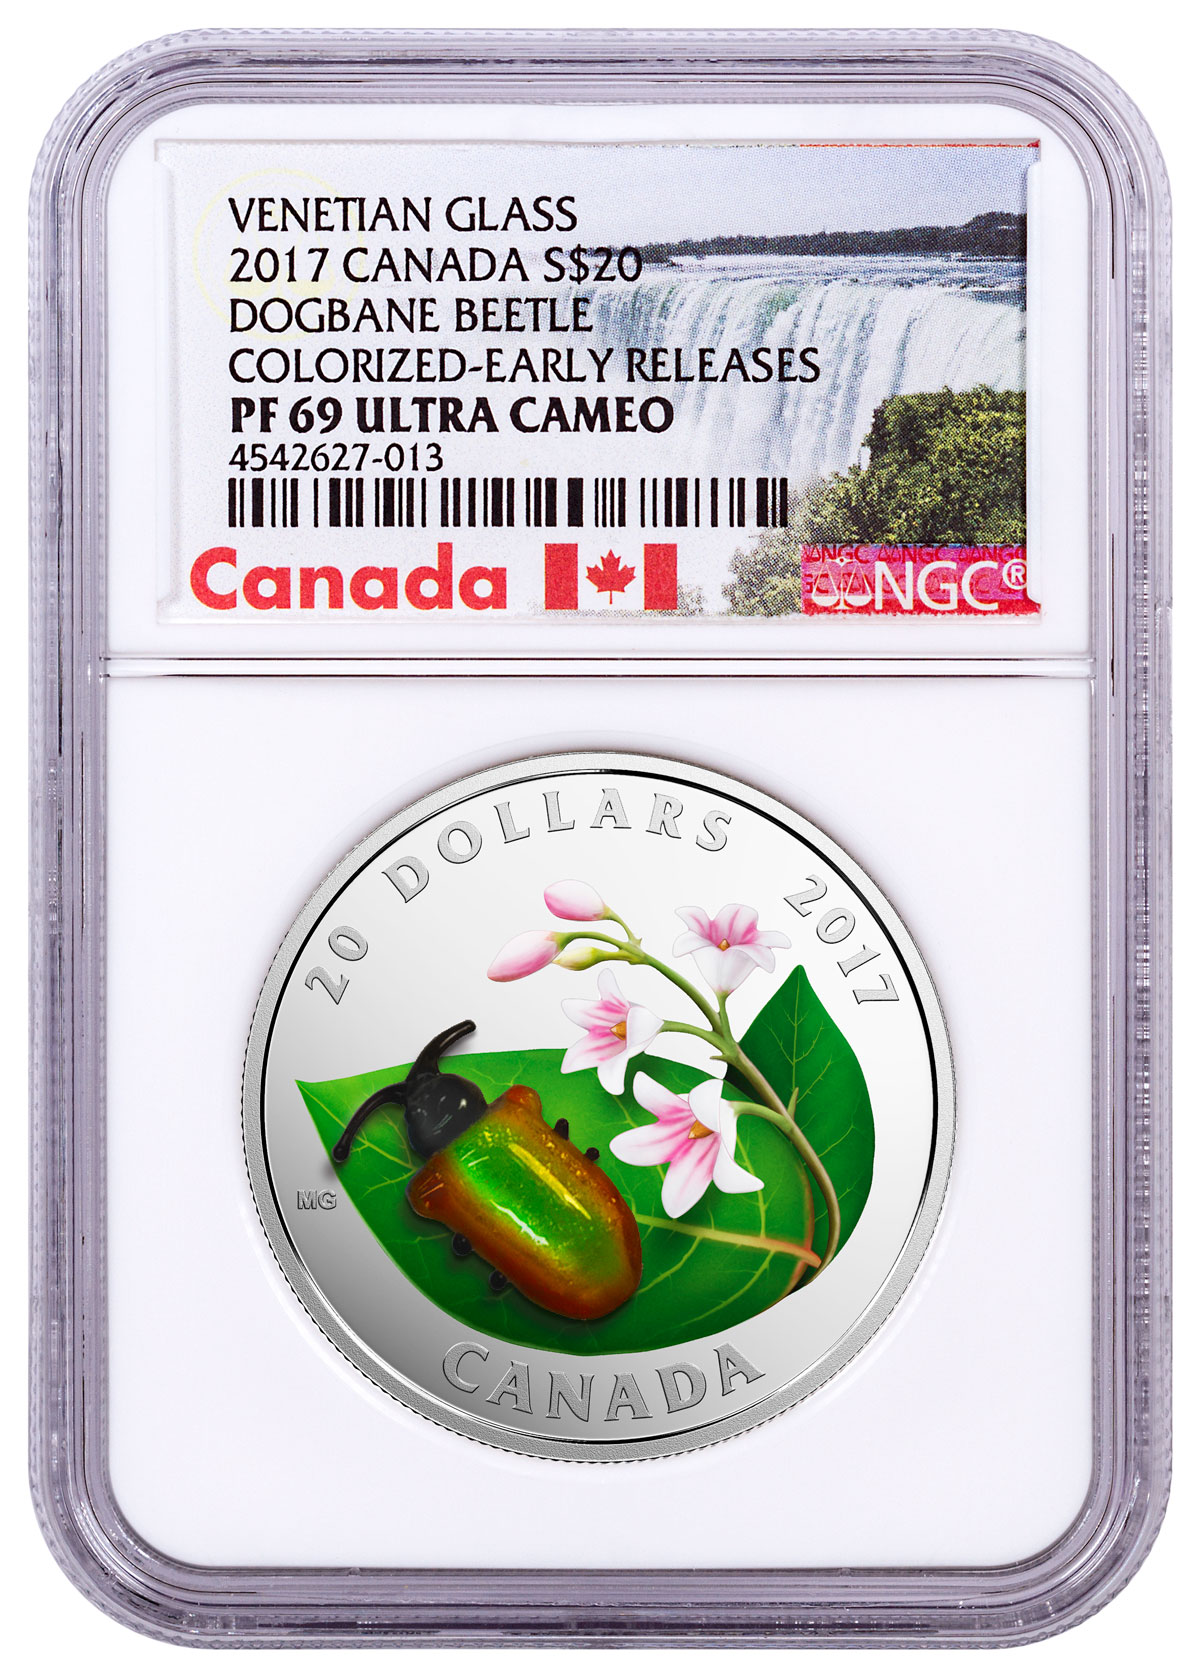 2017 Canada Little Creatures - Engraved Venetian Glass Dogbane Beetle 1 oz Silver Colorized Proof $20 Coin NGC PF69 UC ER (Exclusive Canada Label)